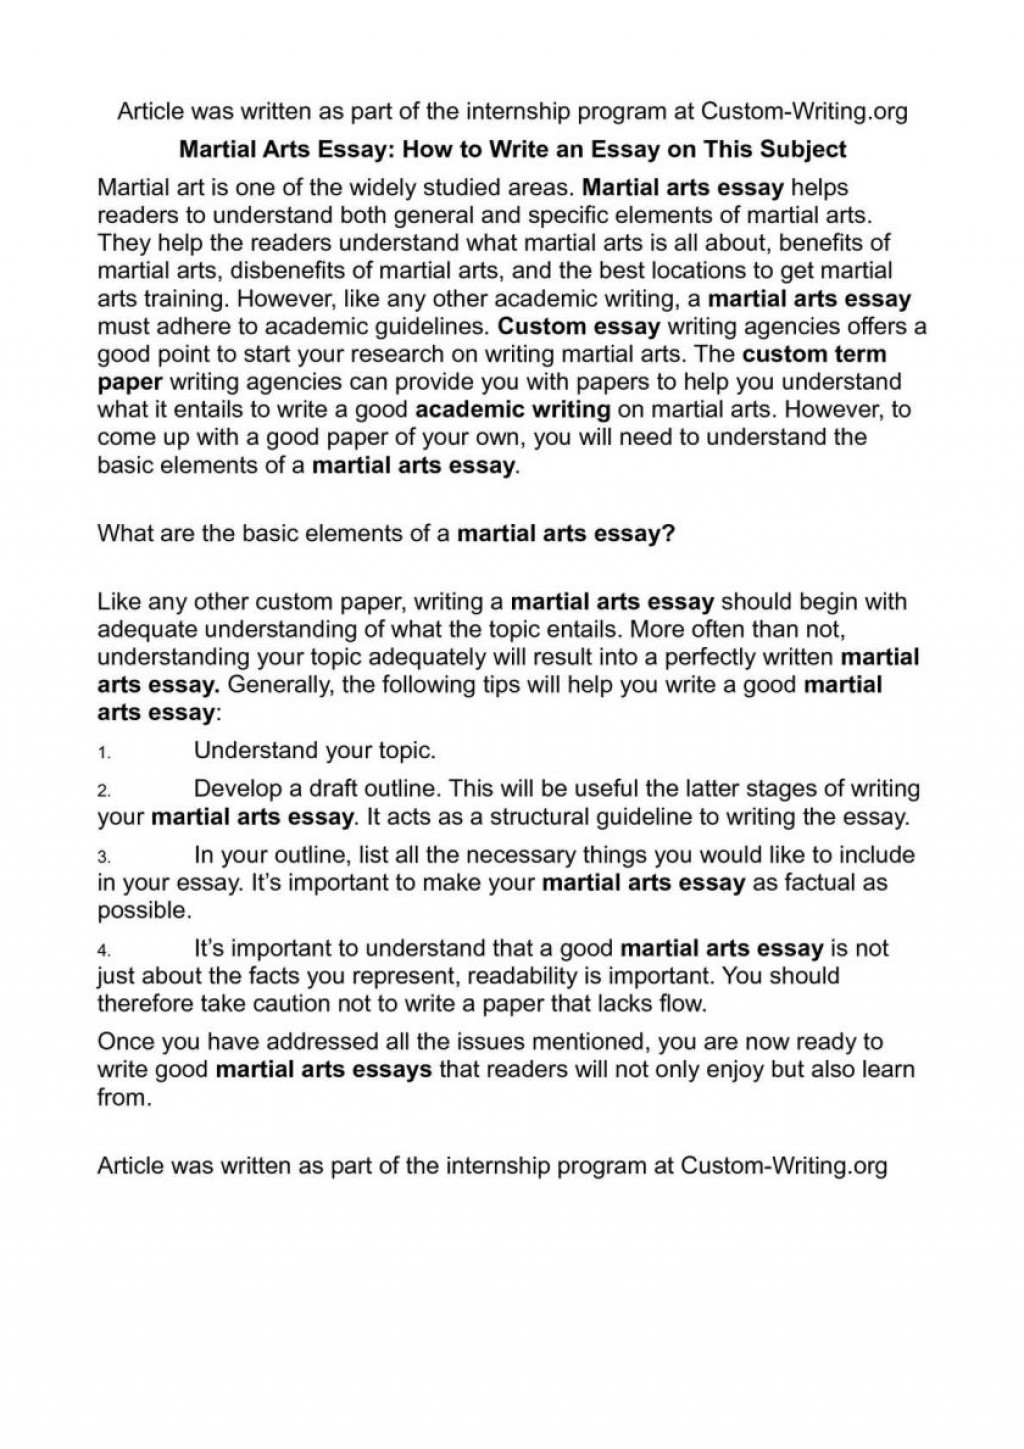 018 Help Me Write My College Essay Zoology Research Paper Cheap How To Application First Formidable For Someone Large